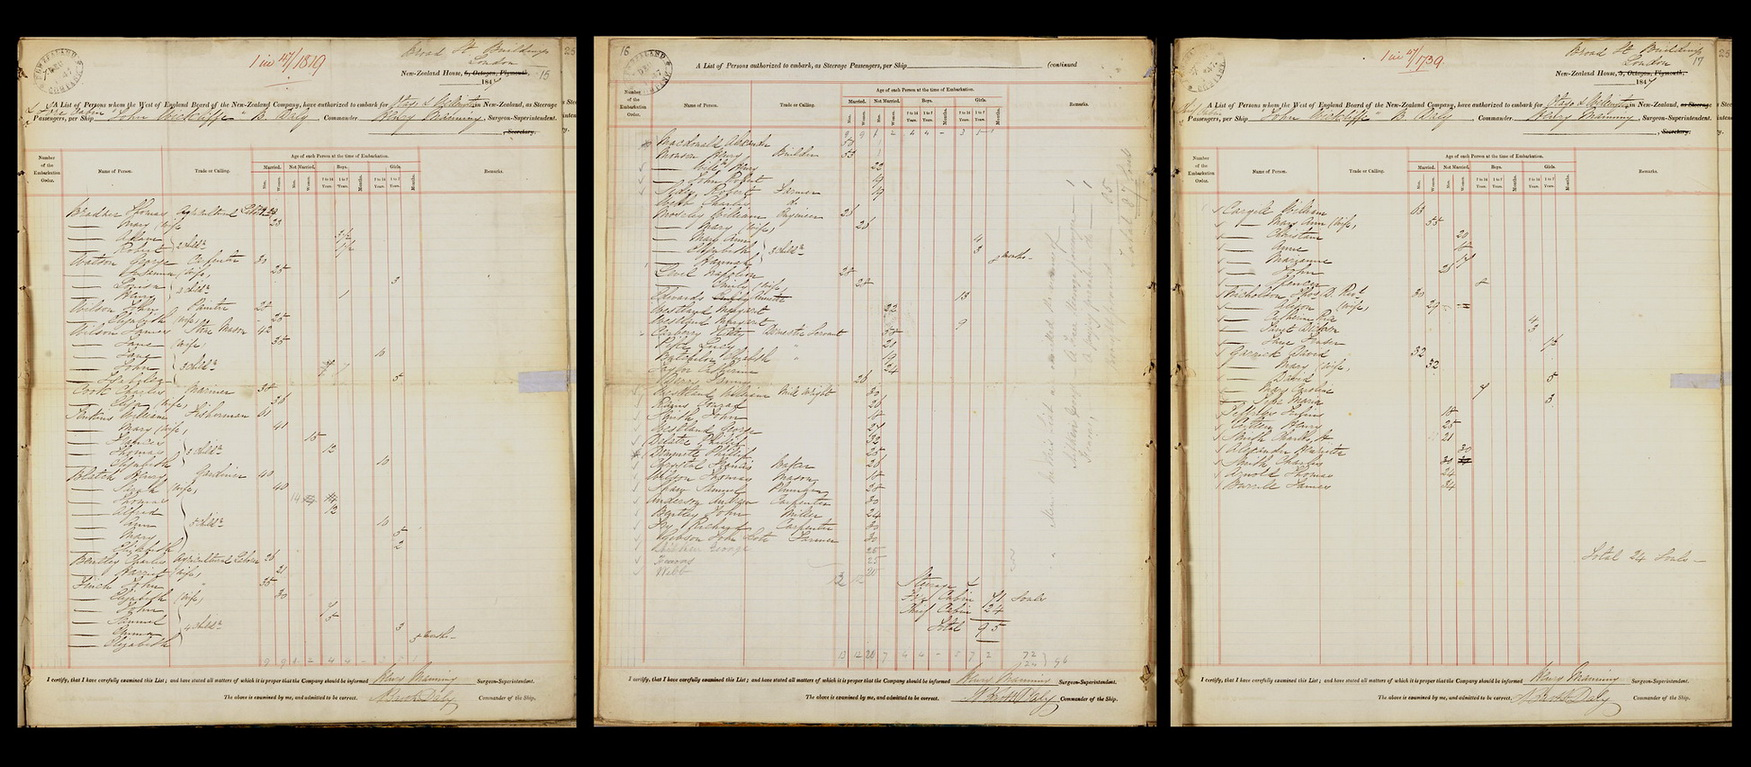 Passenger list for the 1847-1848 voyage of the 'John Wickcliffe' to Port Chalmers